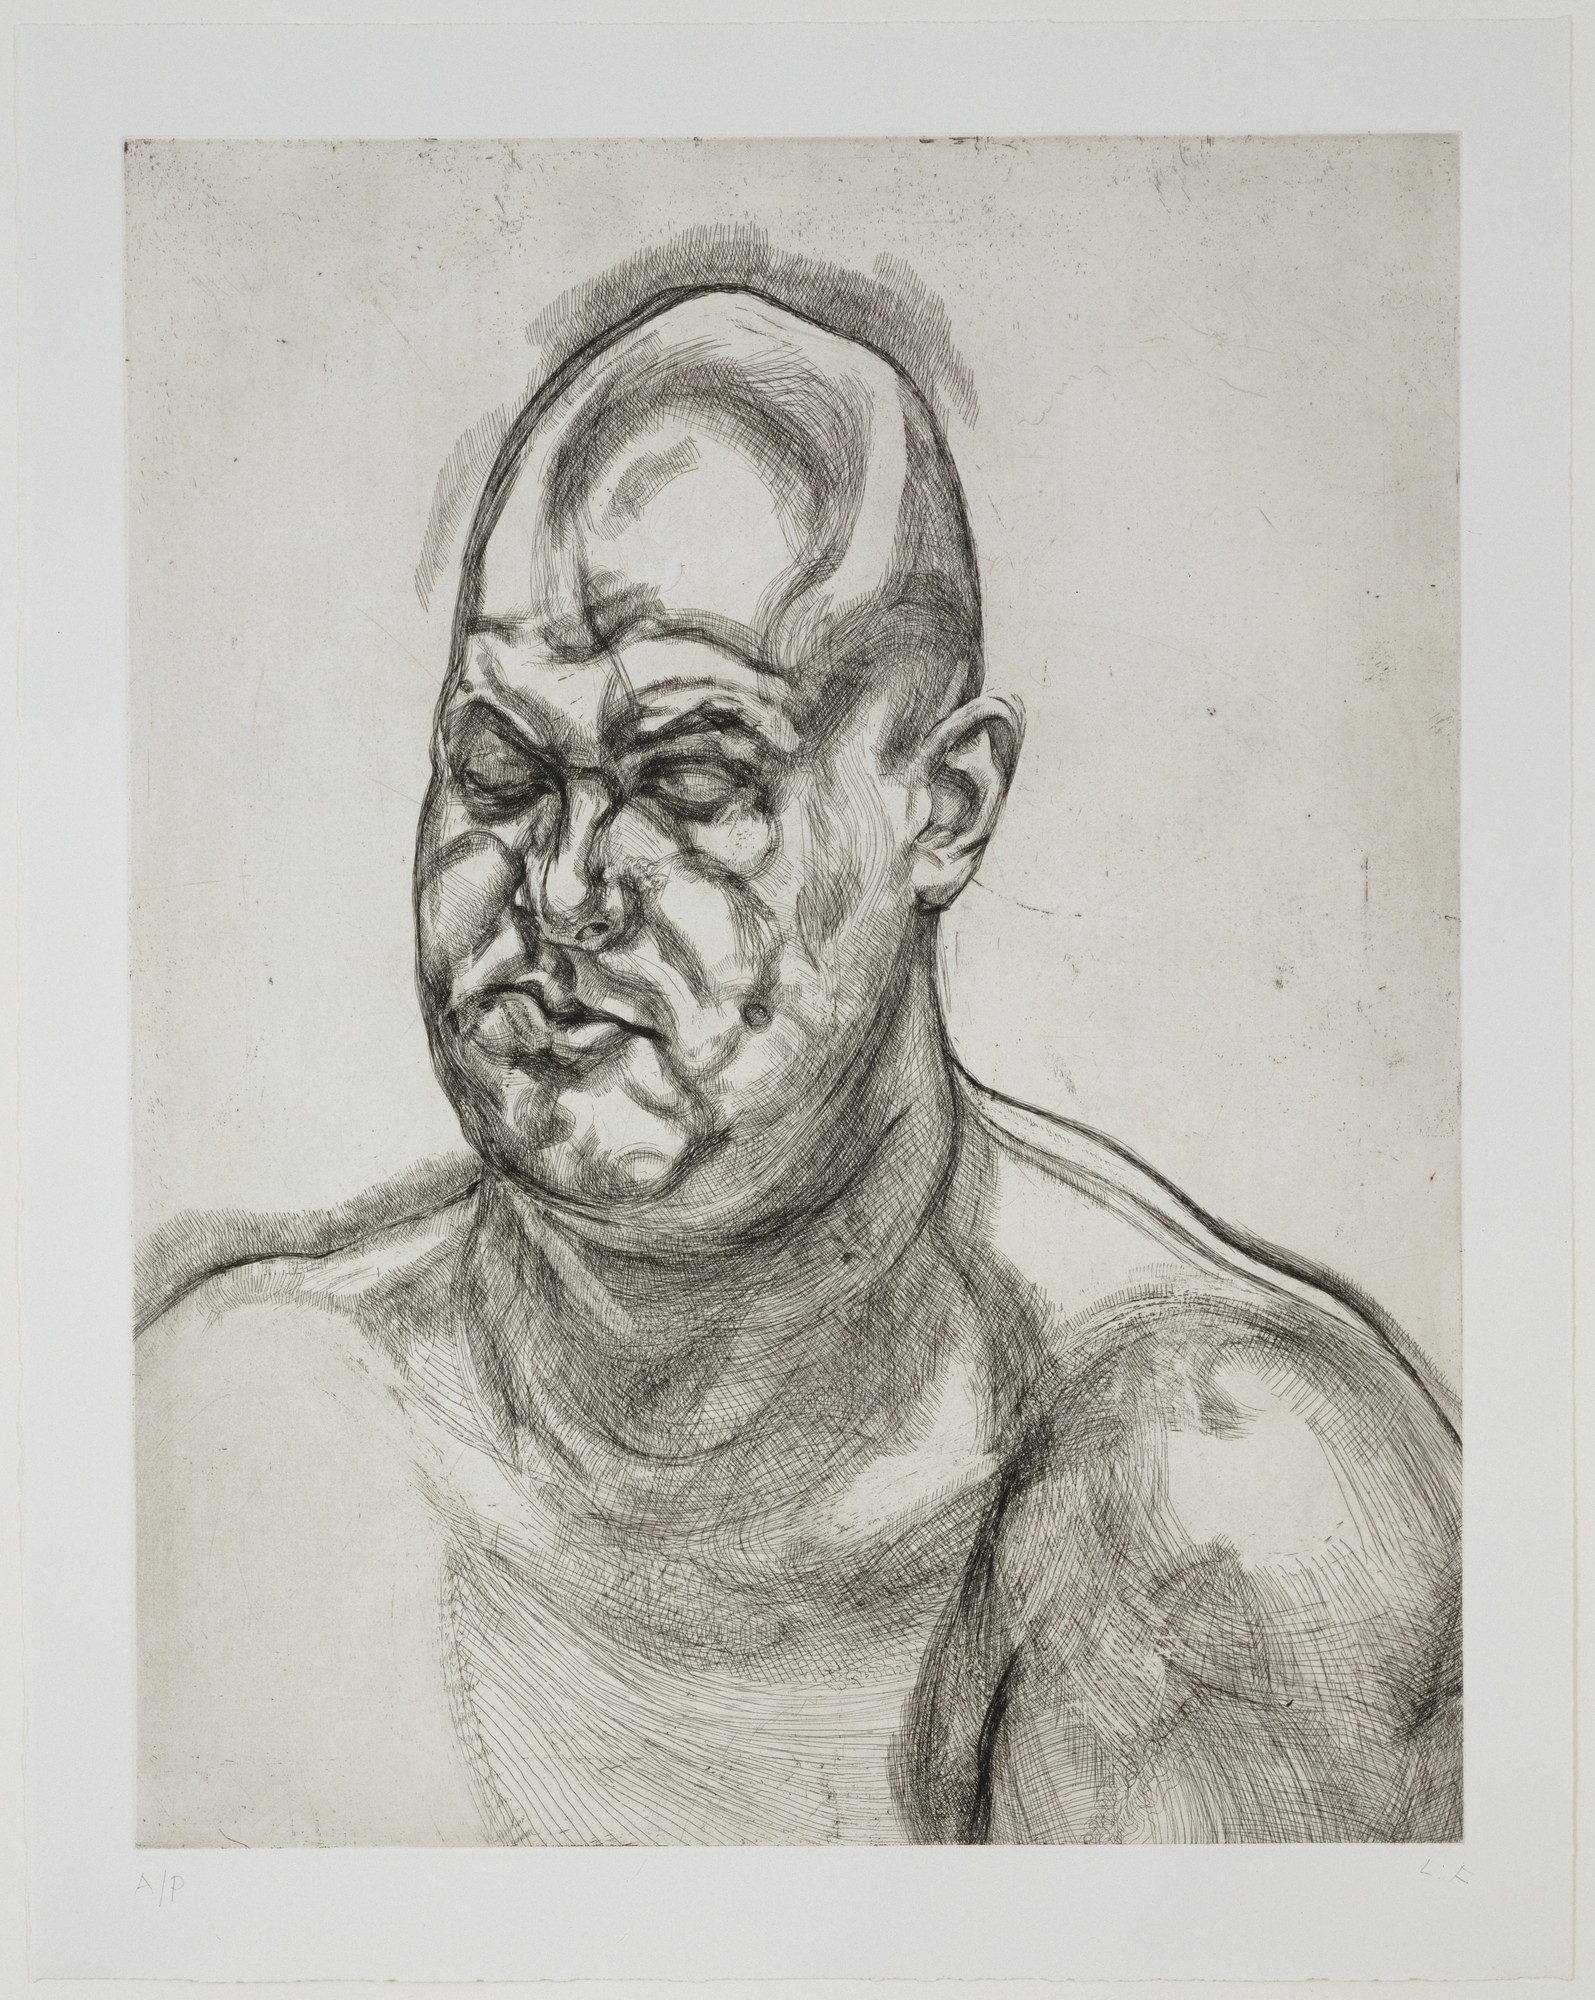 Lucian Freud. Large Head. (1993)